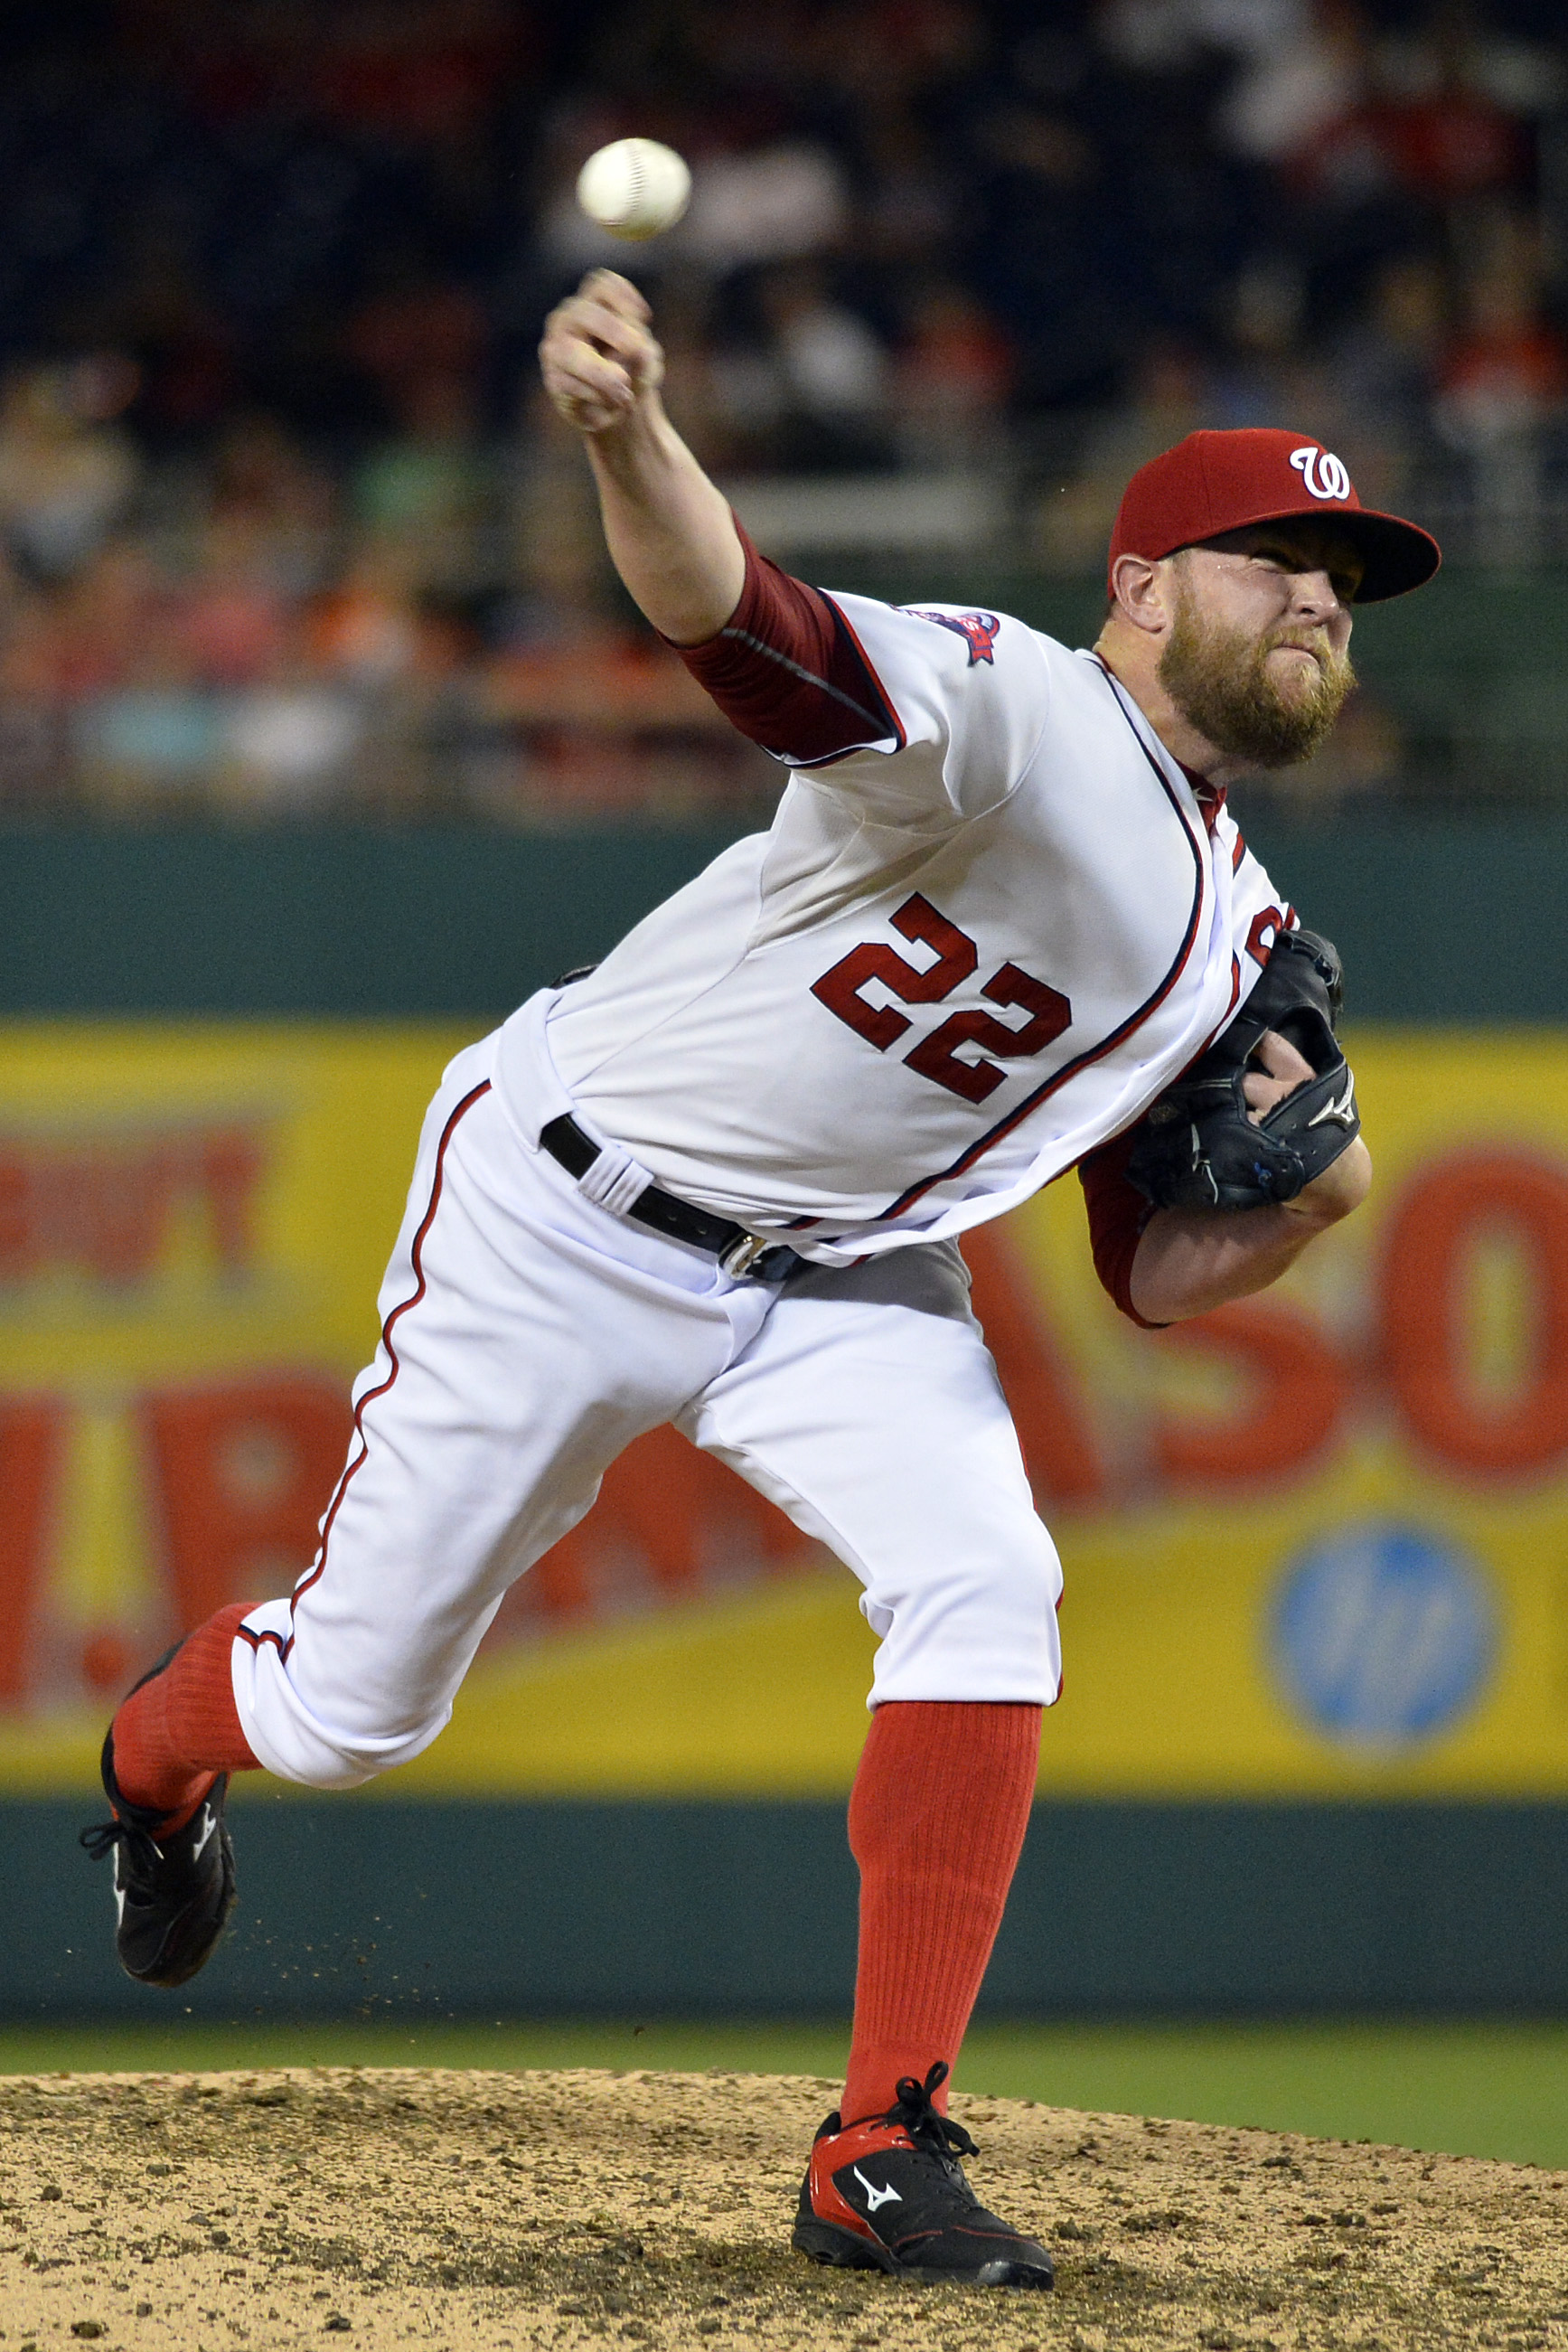 Drew Storen showed us exactly why the Nats went out and got Jonathan Papelbon at the deadline on Tuesday night.